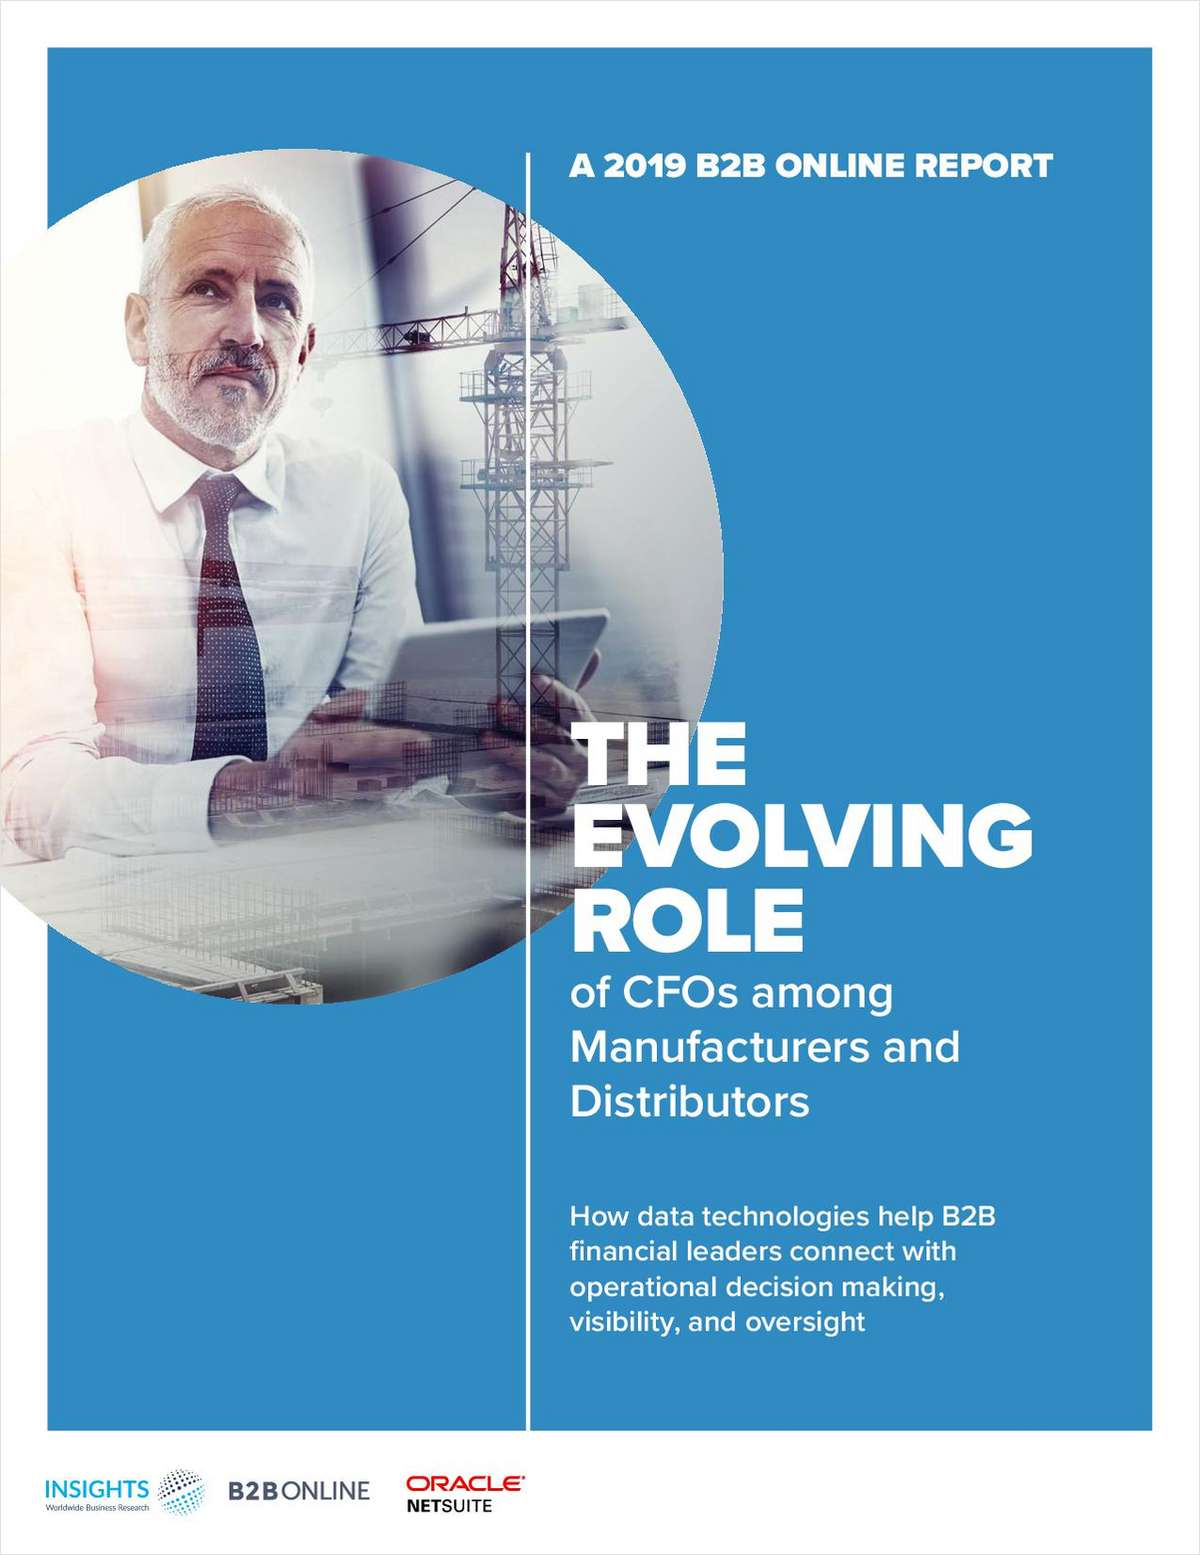 The Evolving Role of CFOs among Manufacturers and Distributors